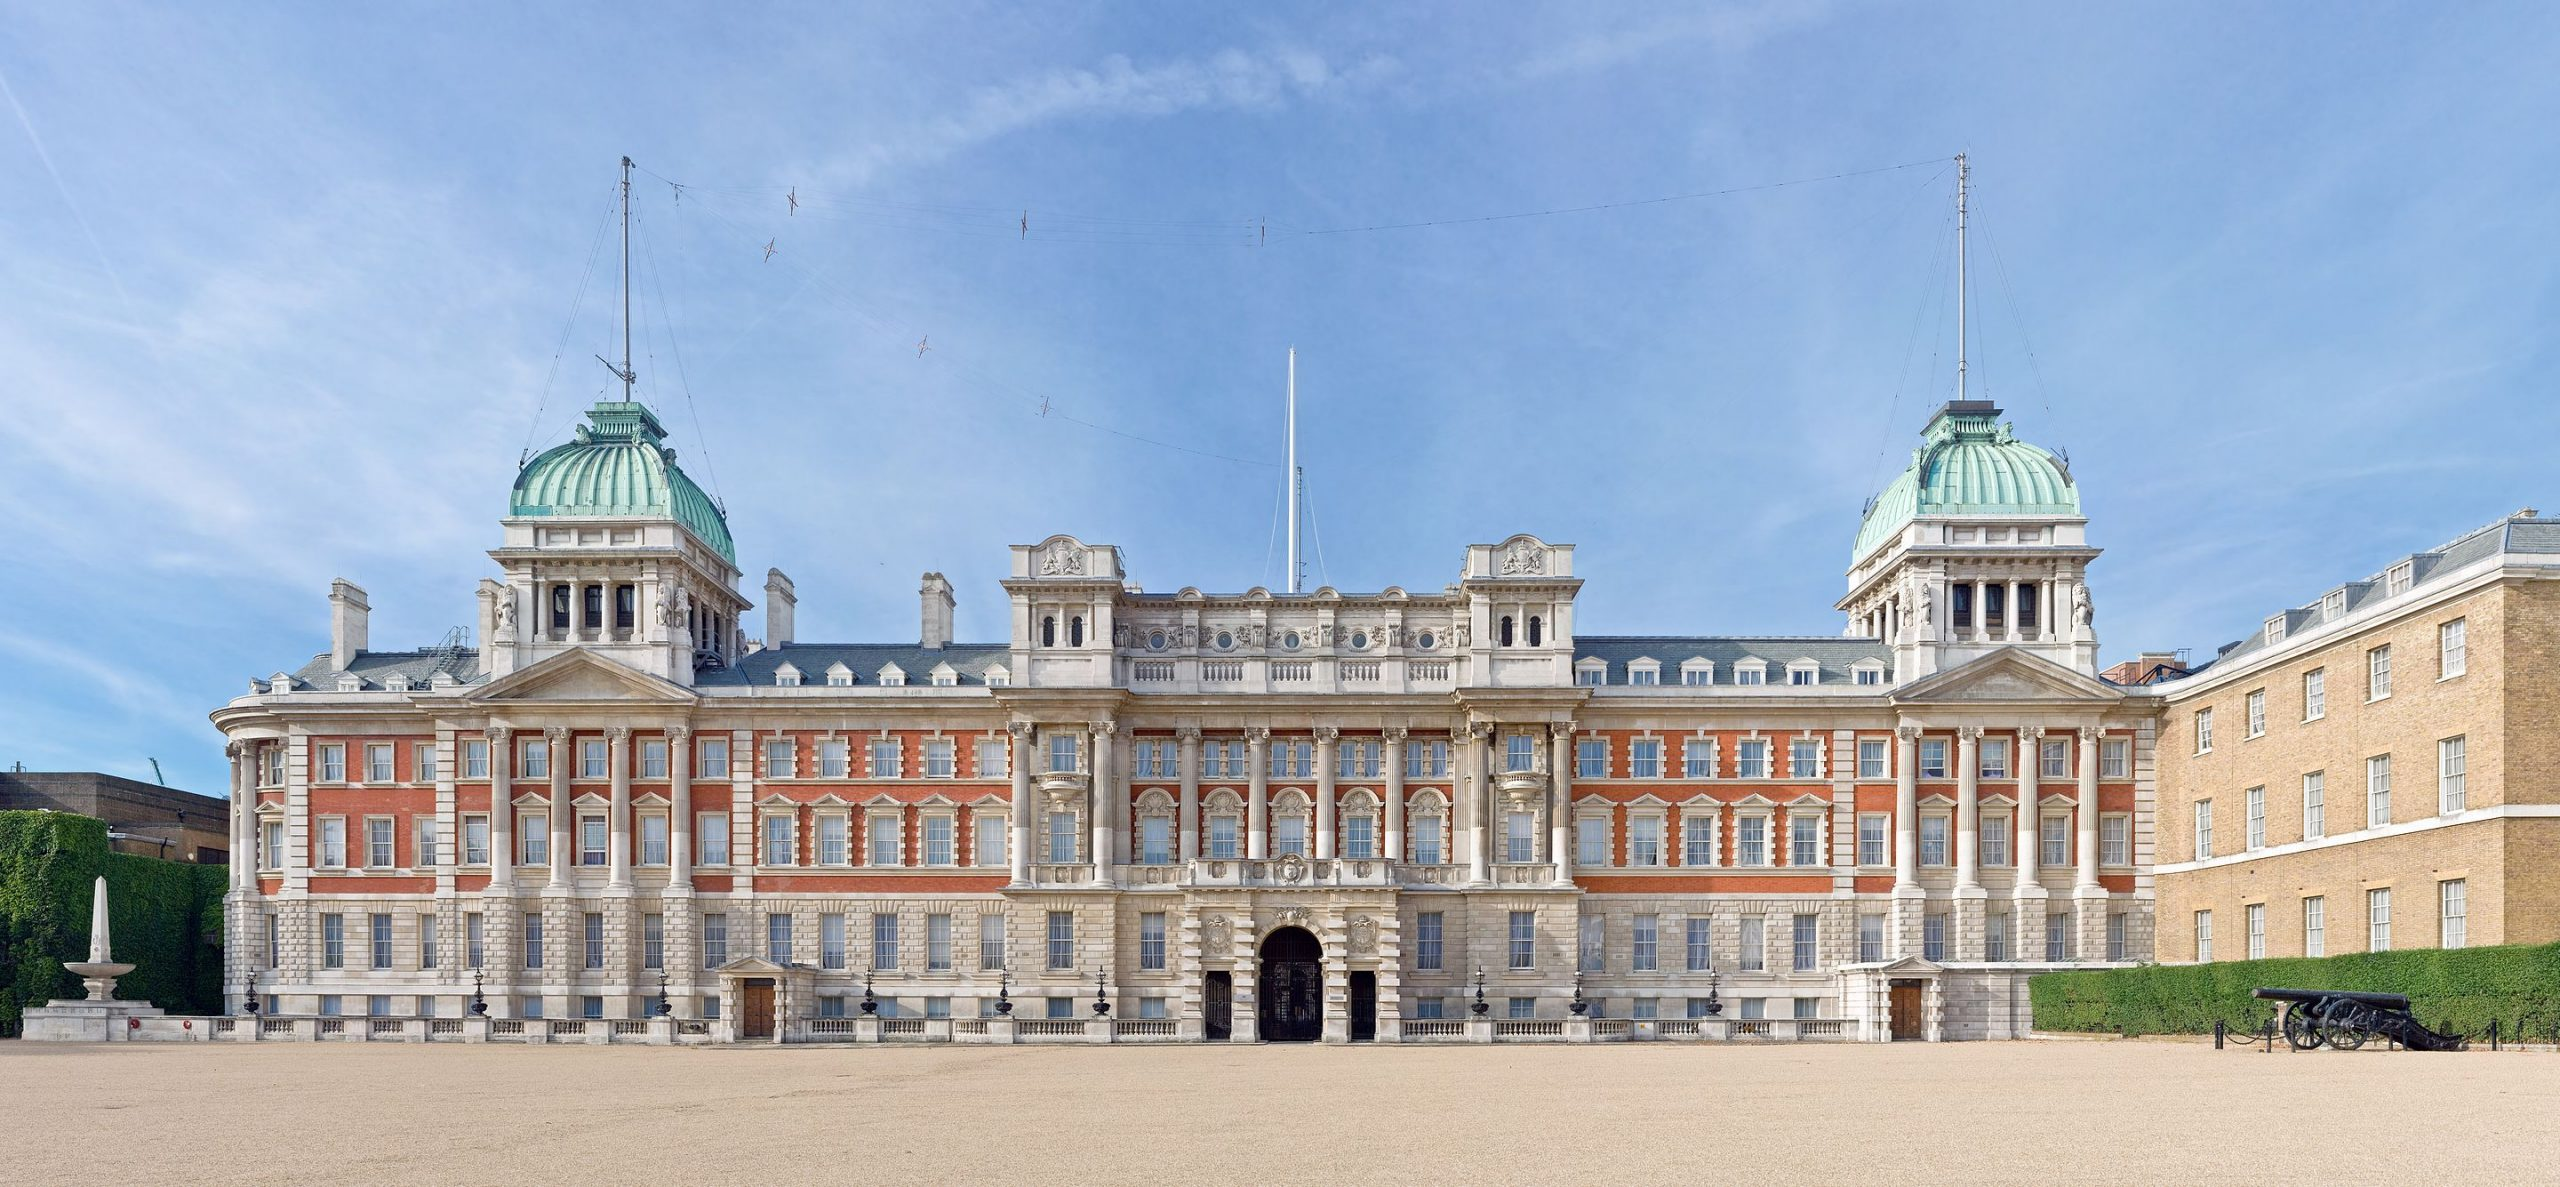 The former Admiralty Building, Horse Guards Parade (image: Wikipedia)